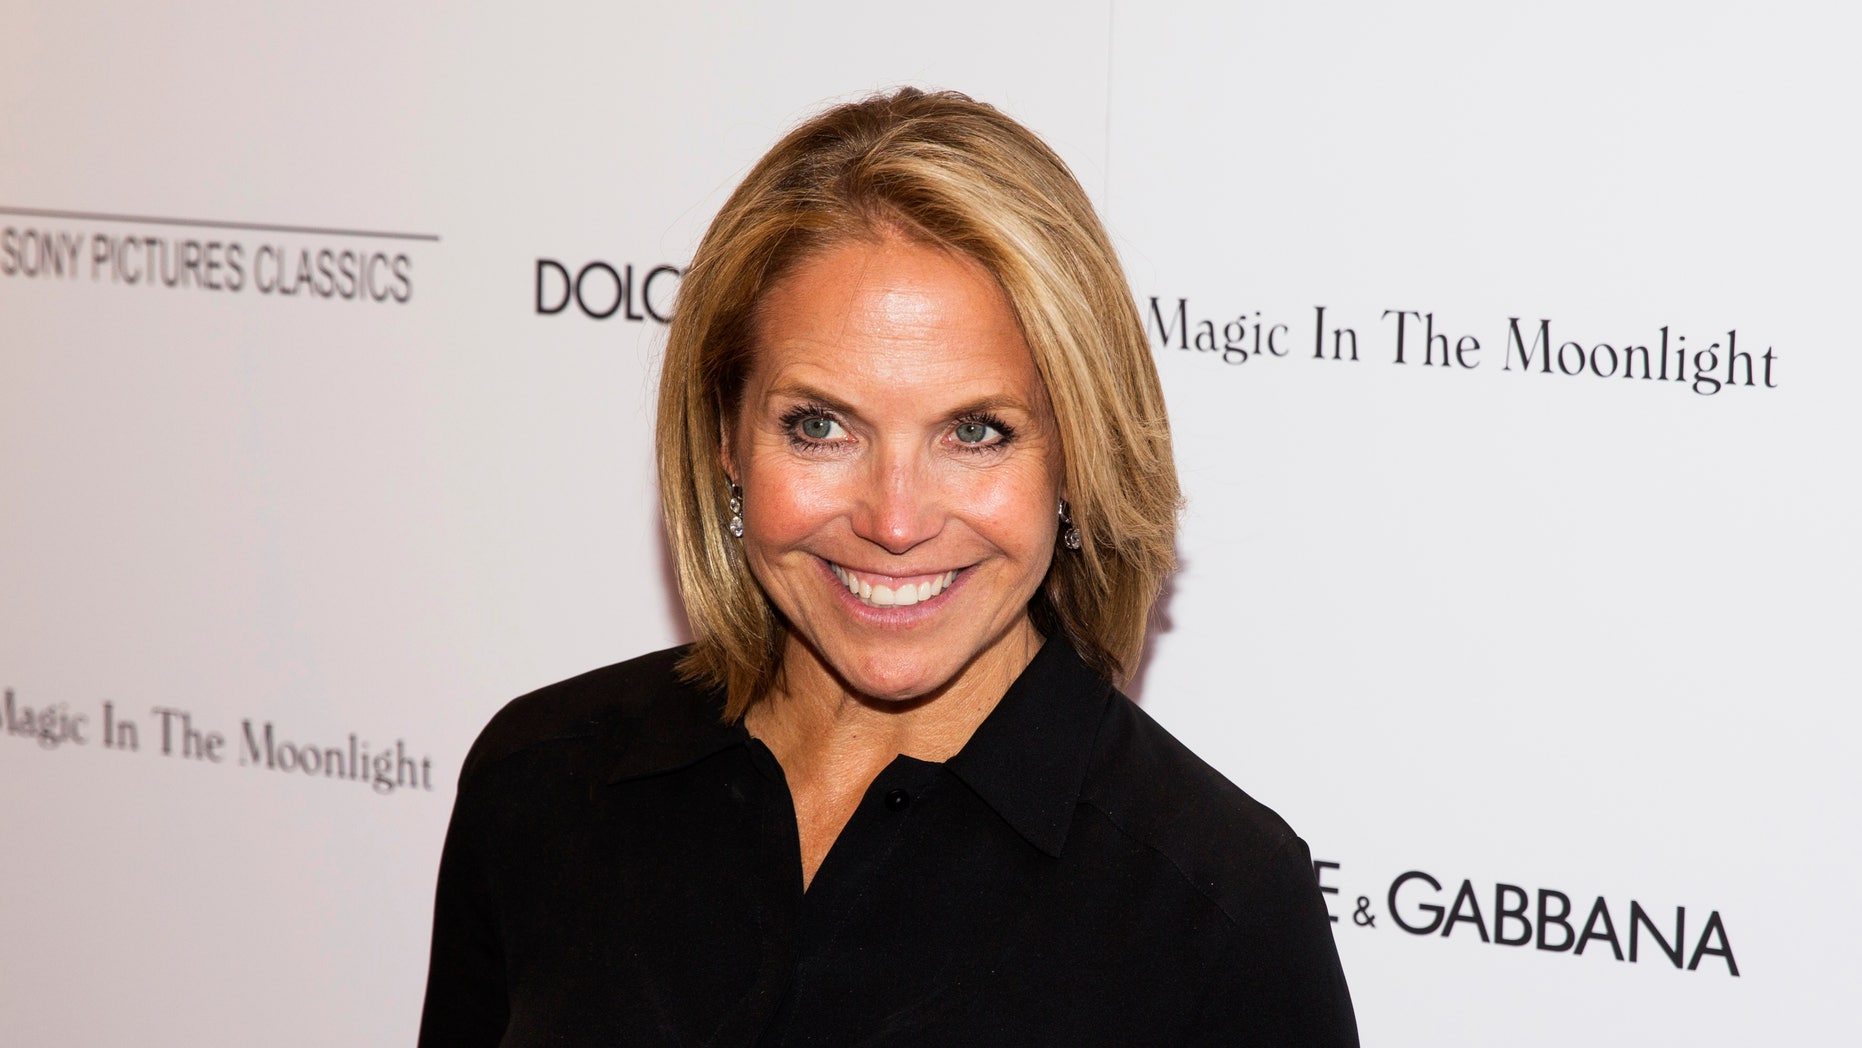 """July 17, 2014. Katie Couric arrives for the premiere of the Woody Allen film """"Magic in the Moonlight"""" in New York."""